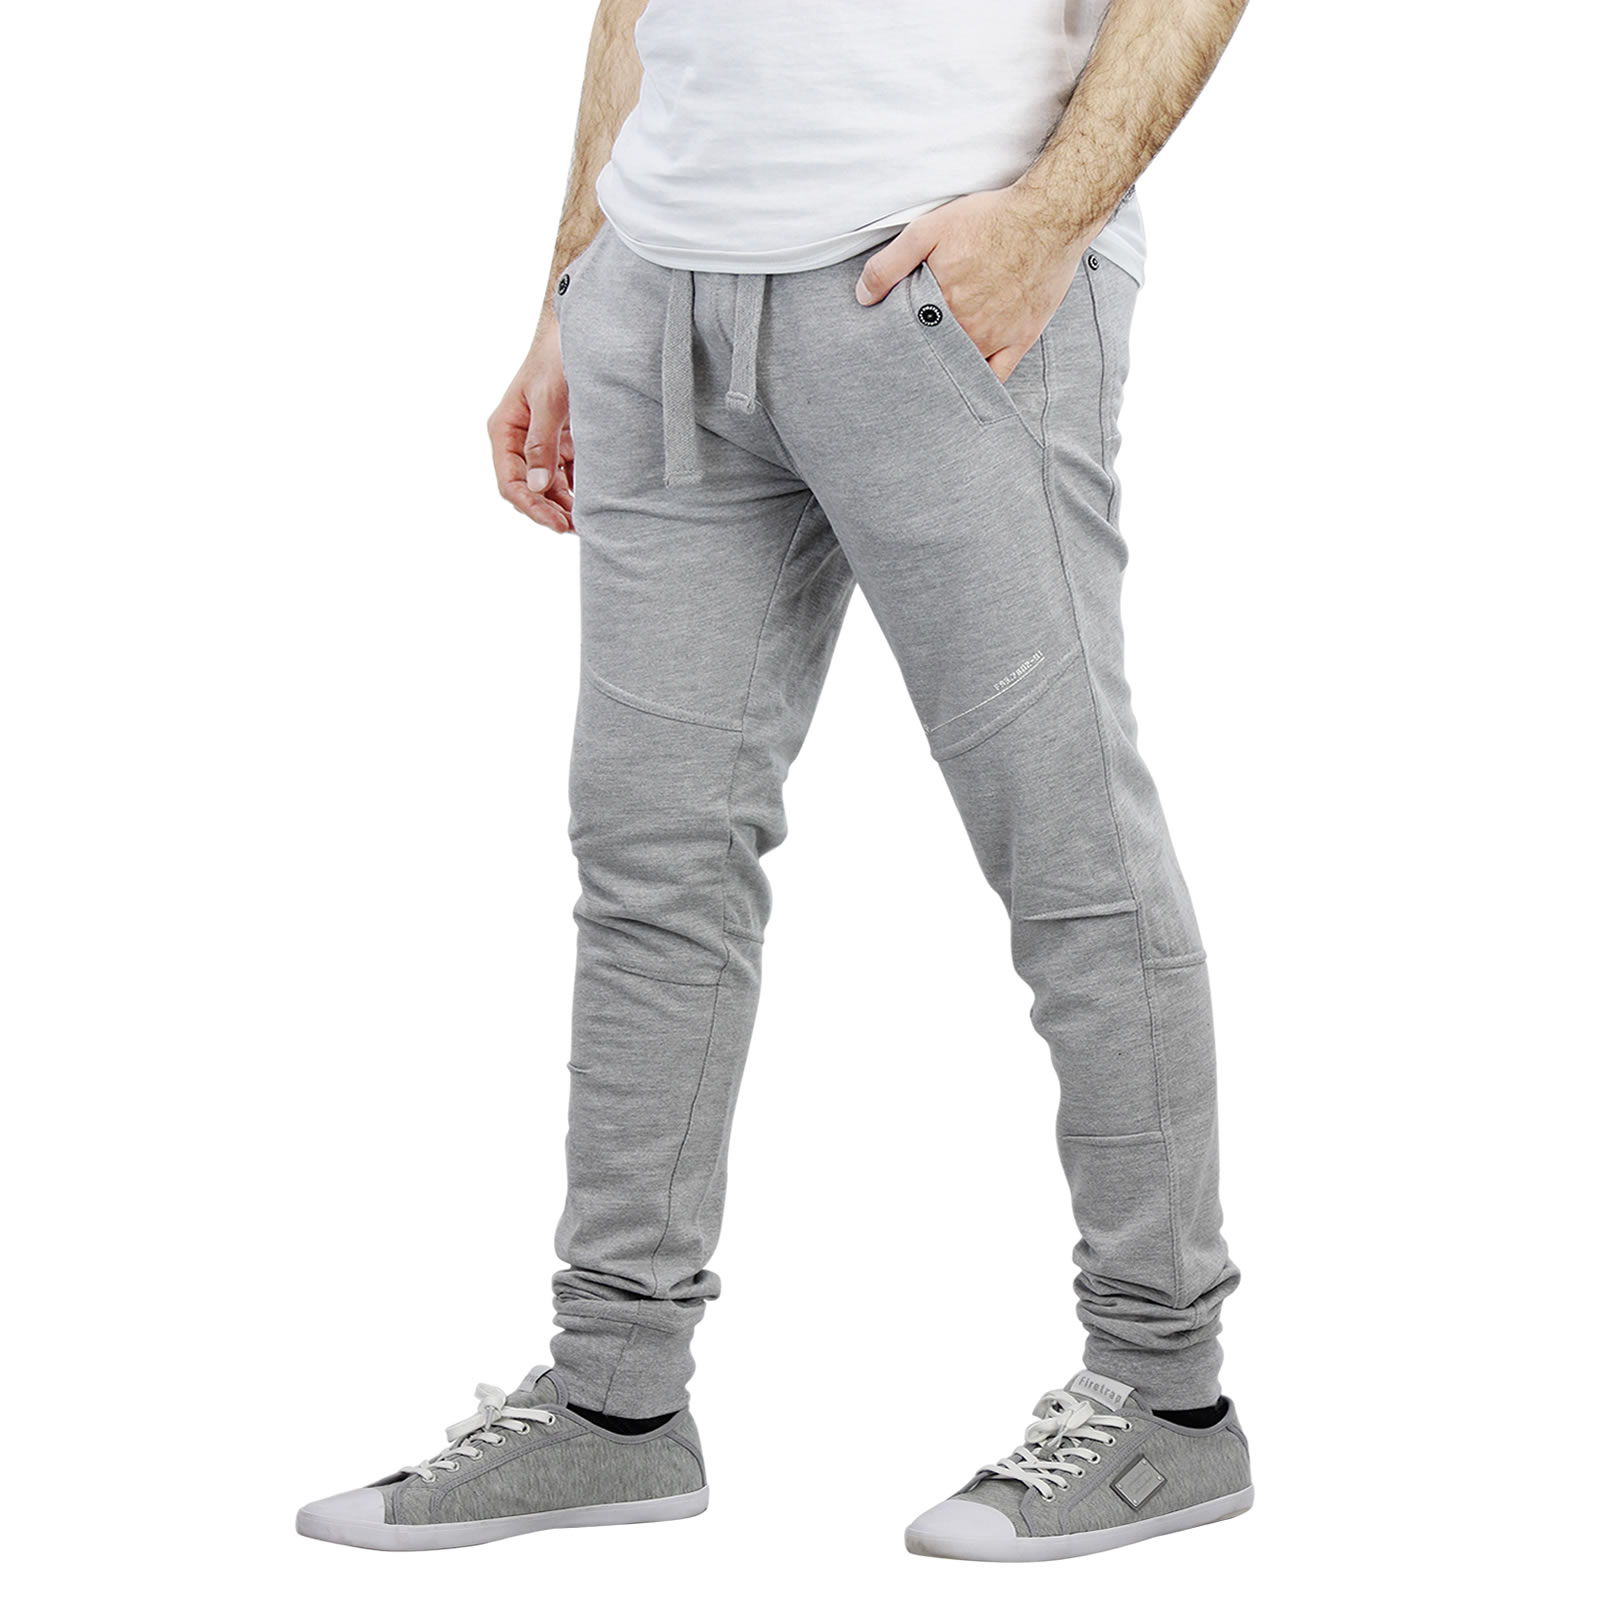 Discover men's joggers at ASOS. Shop comfy range of men's sweatpants, from skinny, cuffed to drop crotch or loose styles designed to look classically cool. your browser is not supported. To use ASOS, we recommend using the latest versions of Chrome, Firefox, Safari or Internet Explorer.